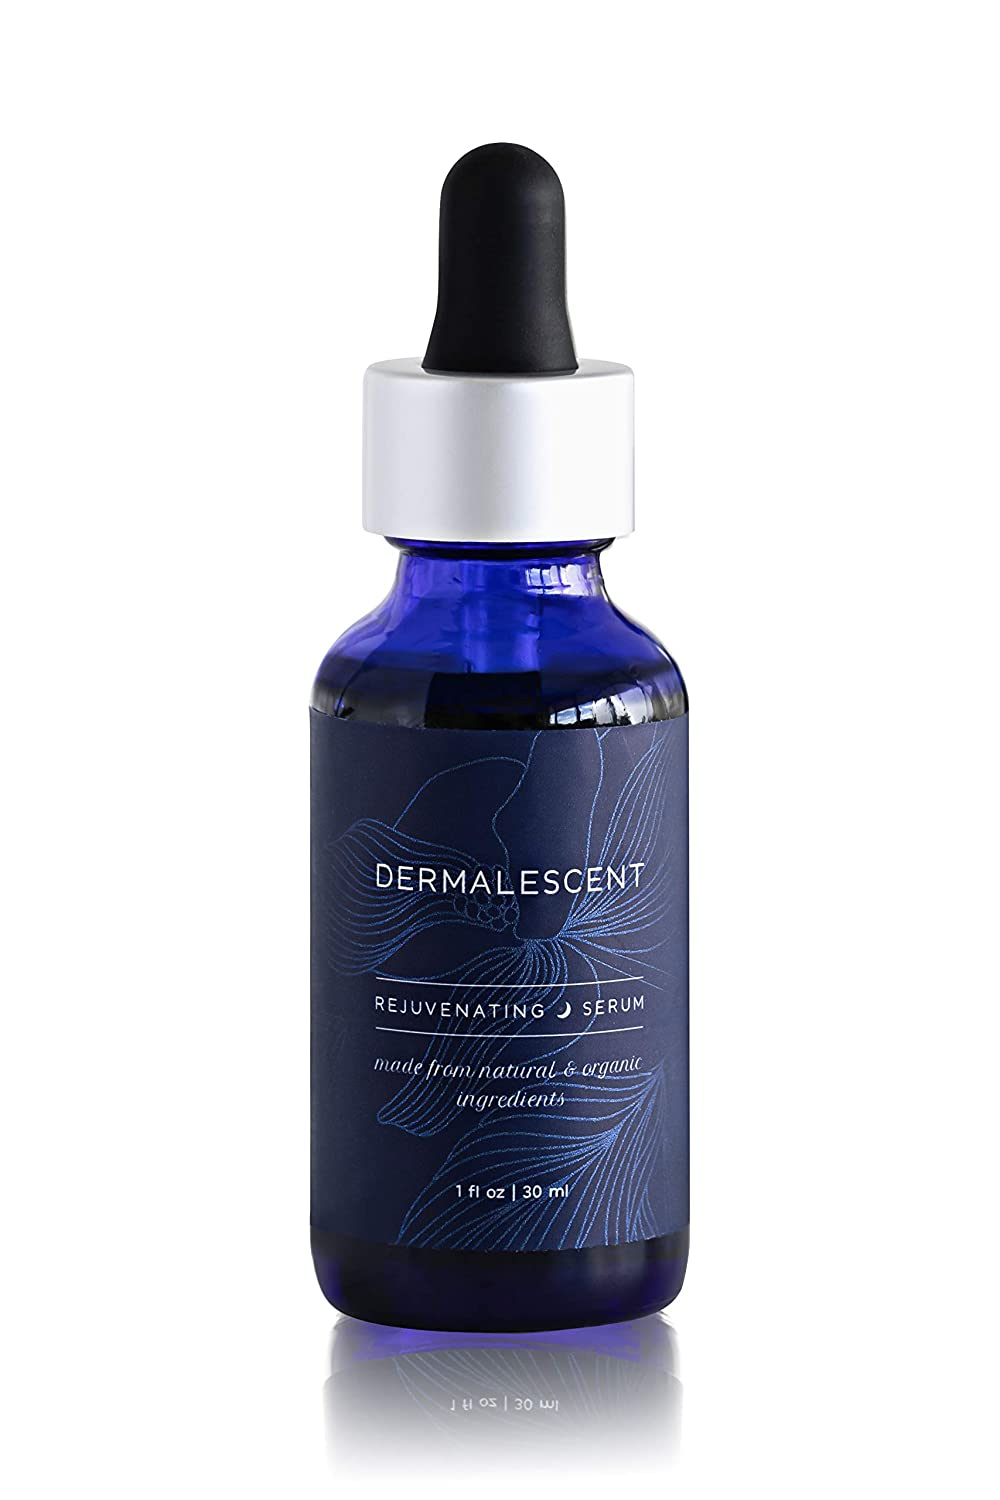 Dermalescent Antioxidant Serum for Wrinkles made from Organic Ingredients - Enhanced Facial Oil - Natural Anti Aging Skin Care with Vitamin E Vitamin C Serum Olive Squalane